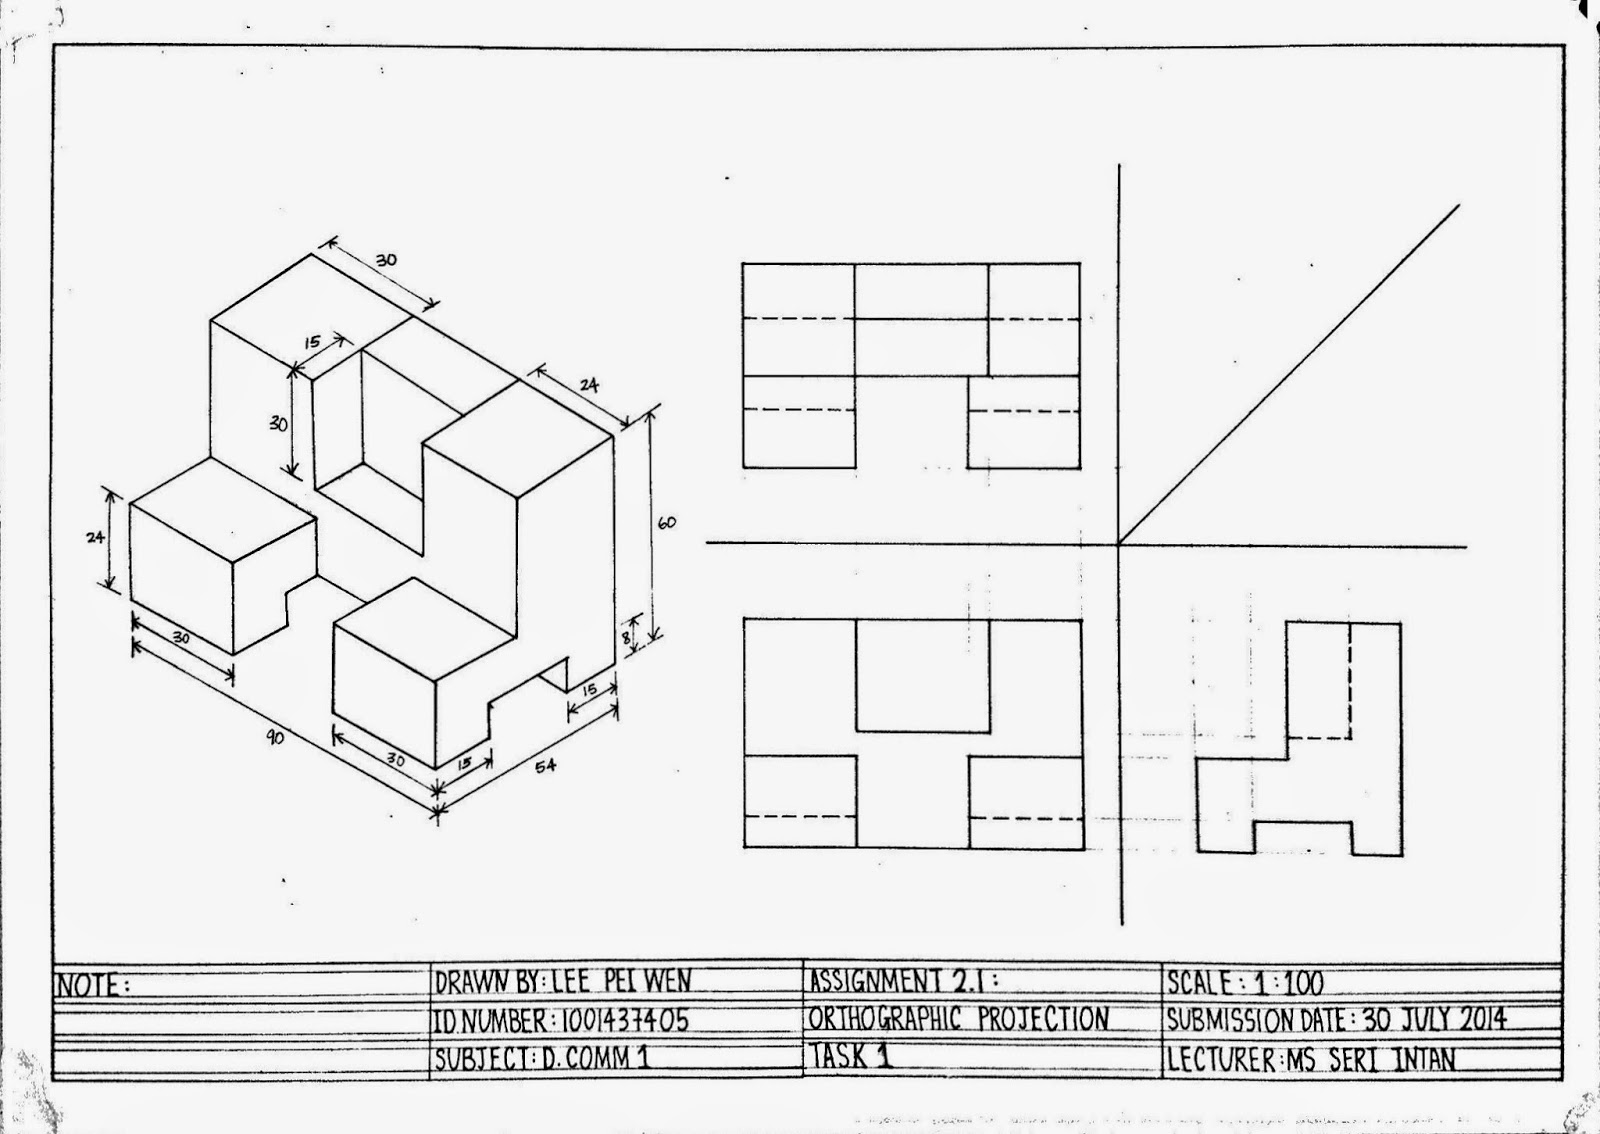 Pw S Design Bit By Bit Orthographic Projection